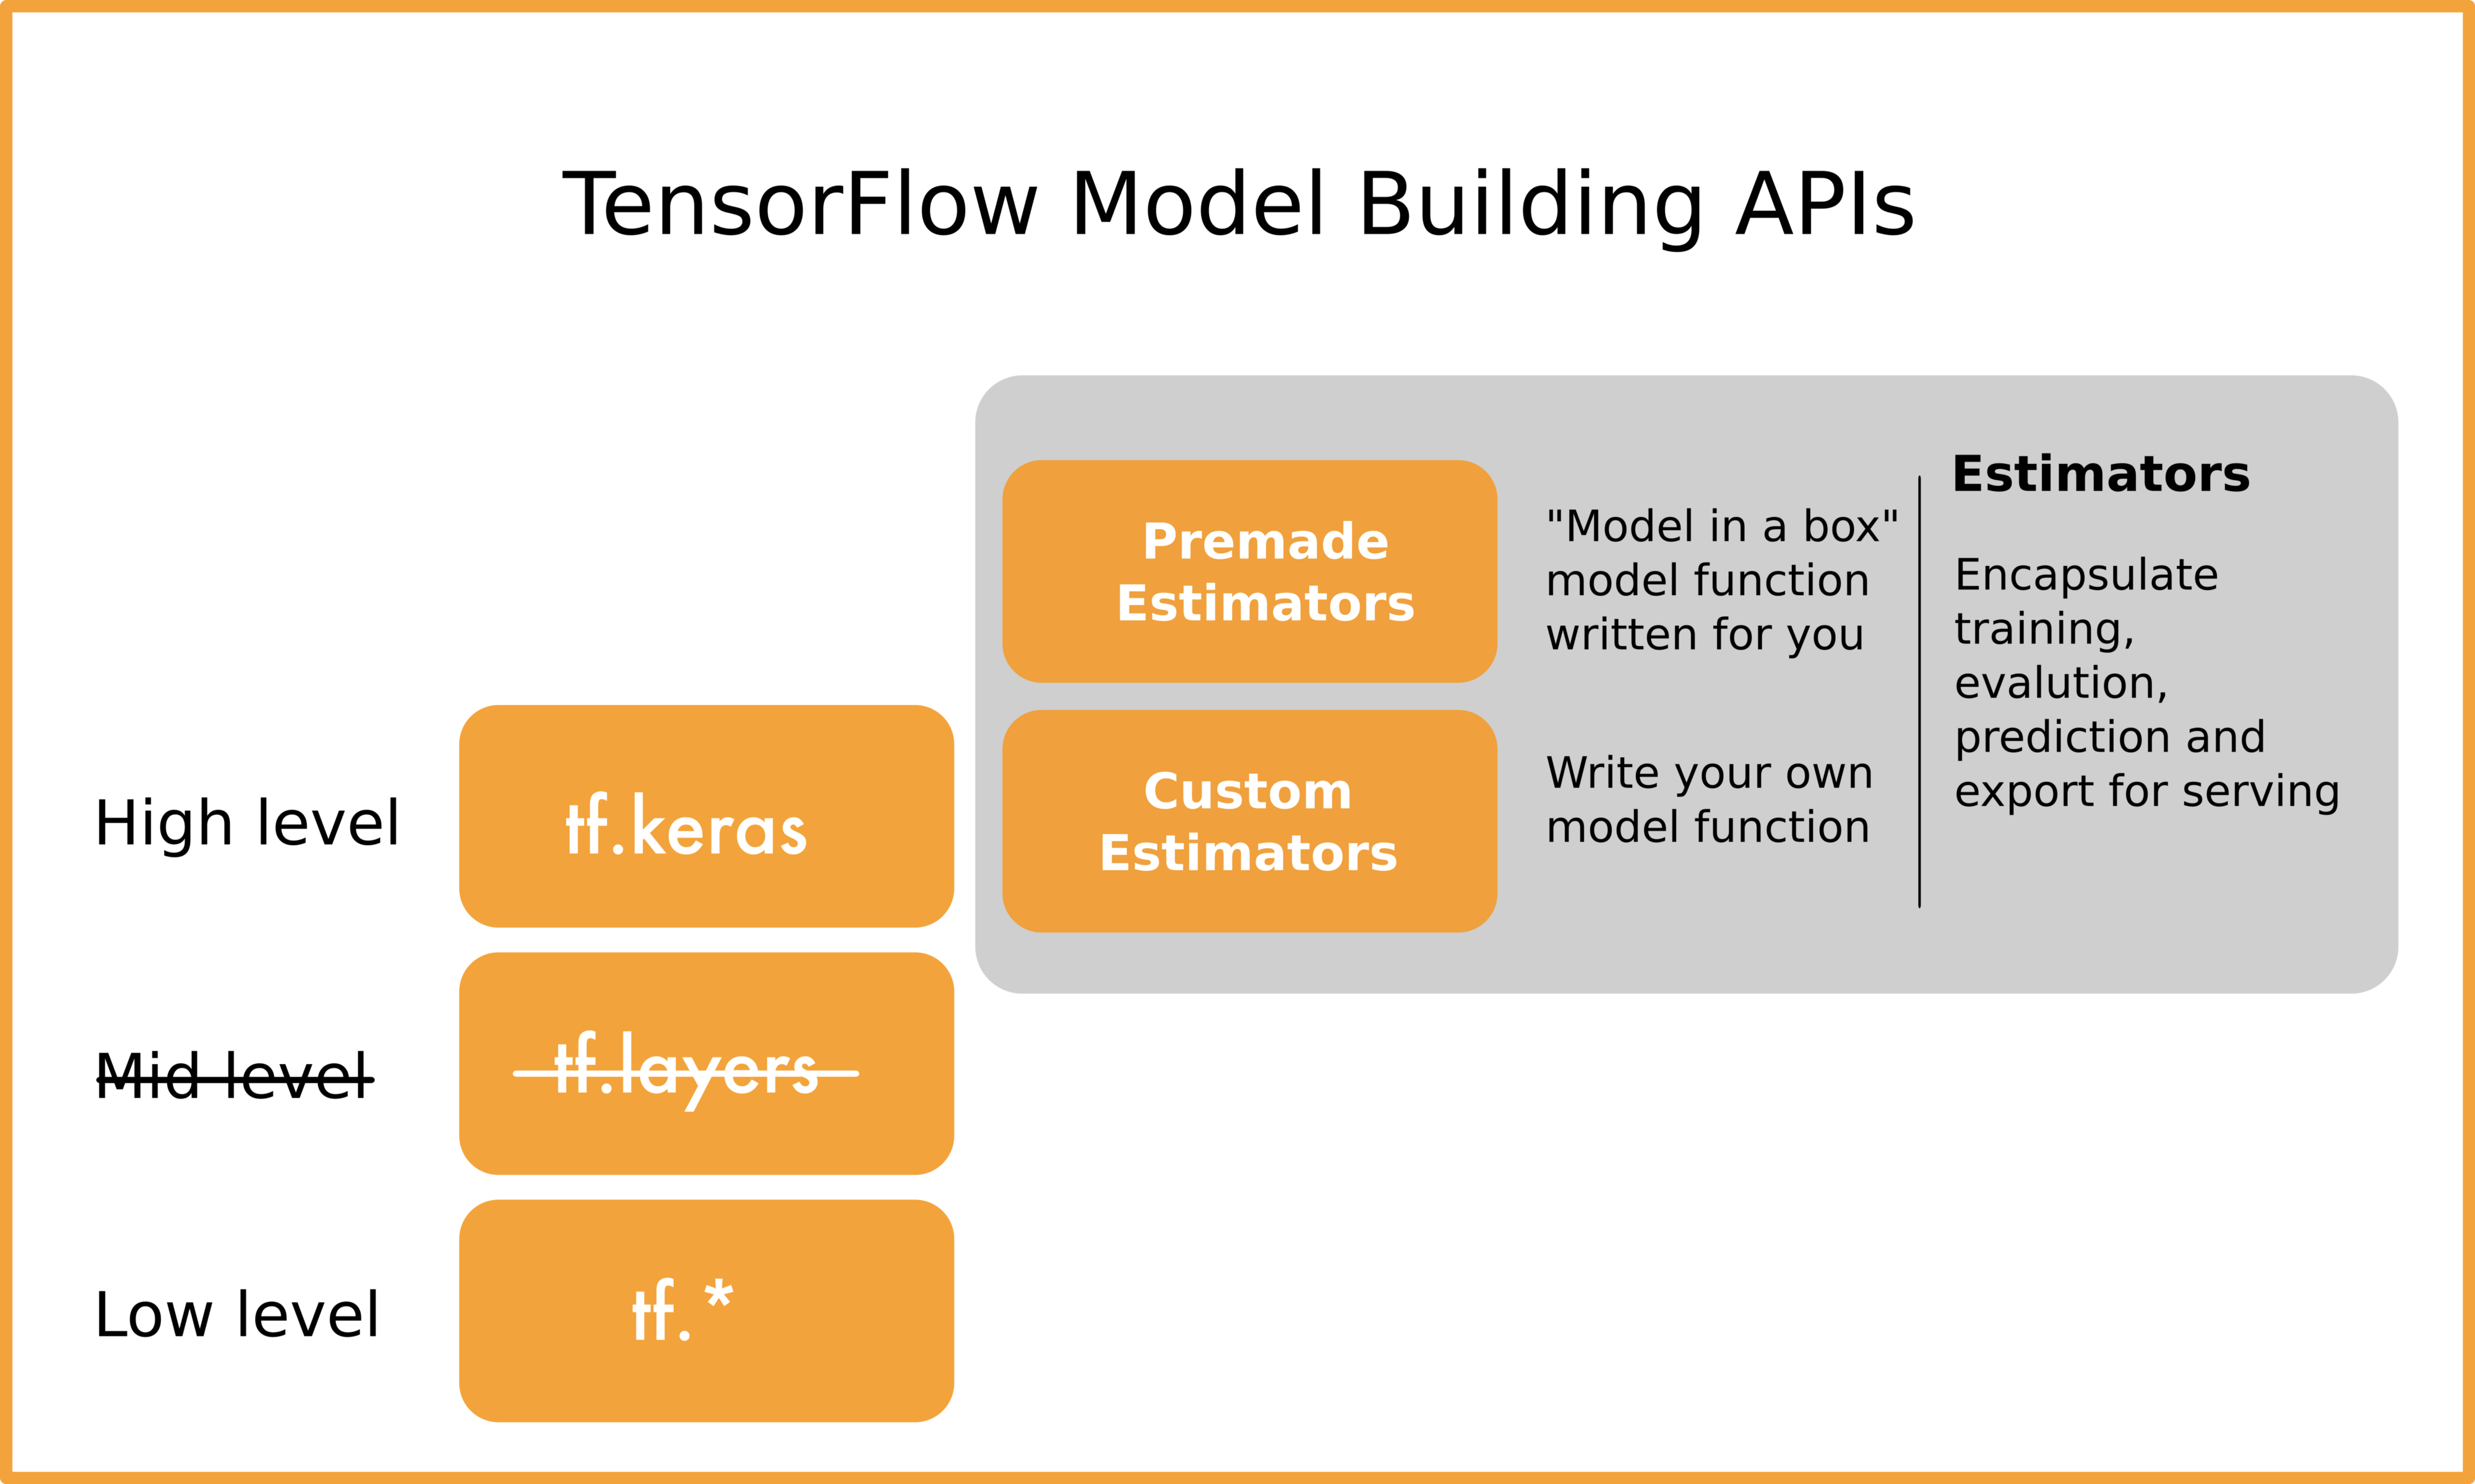 Demystify the TensorFlow APIs - Google Developers Experts